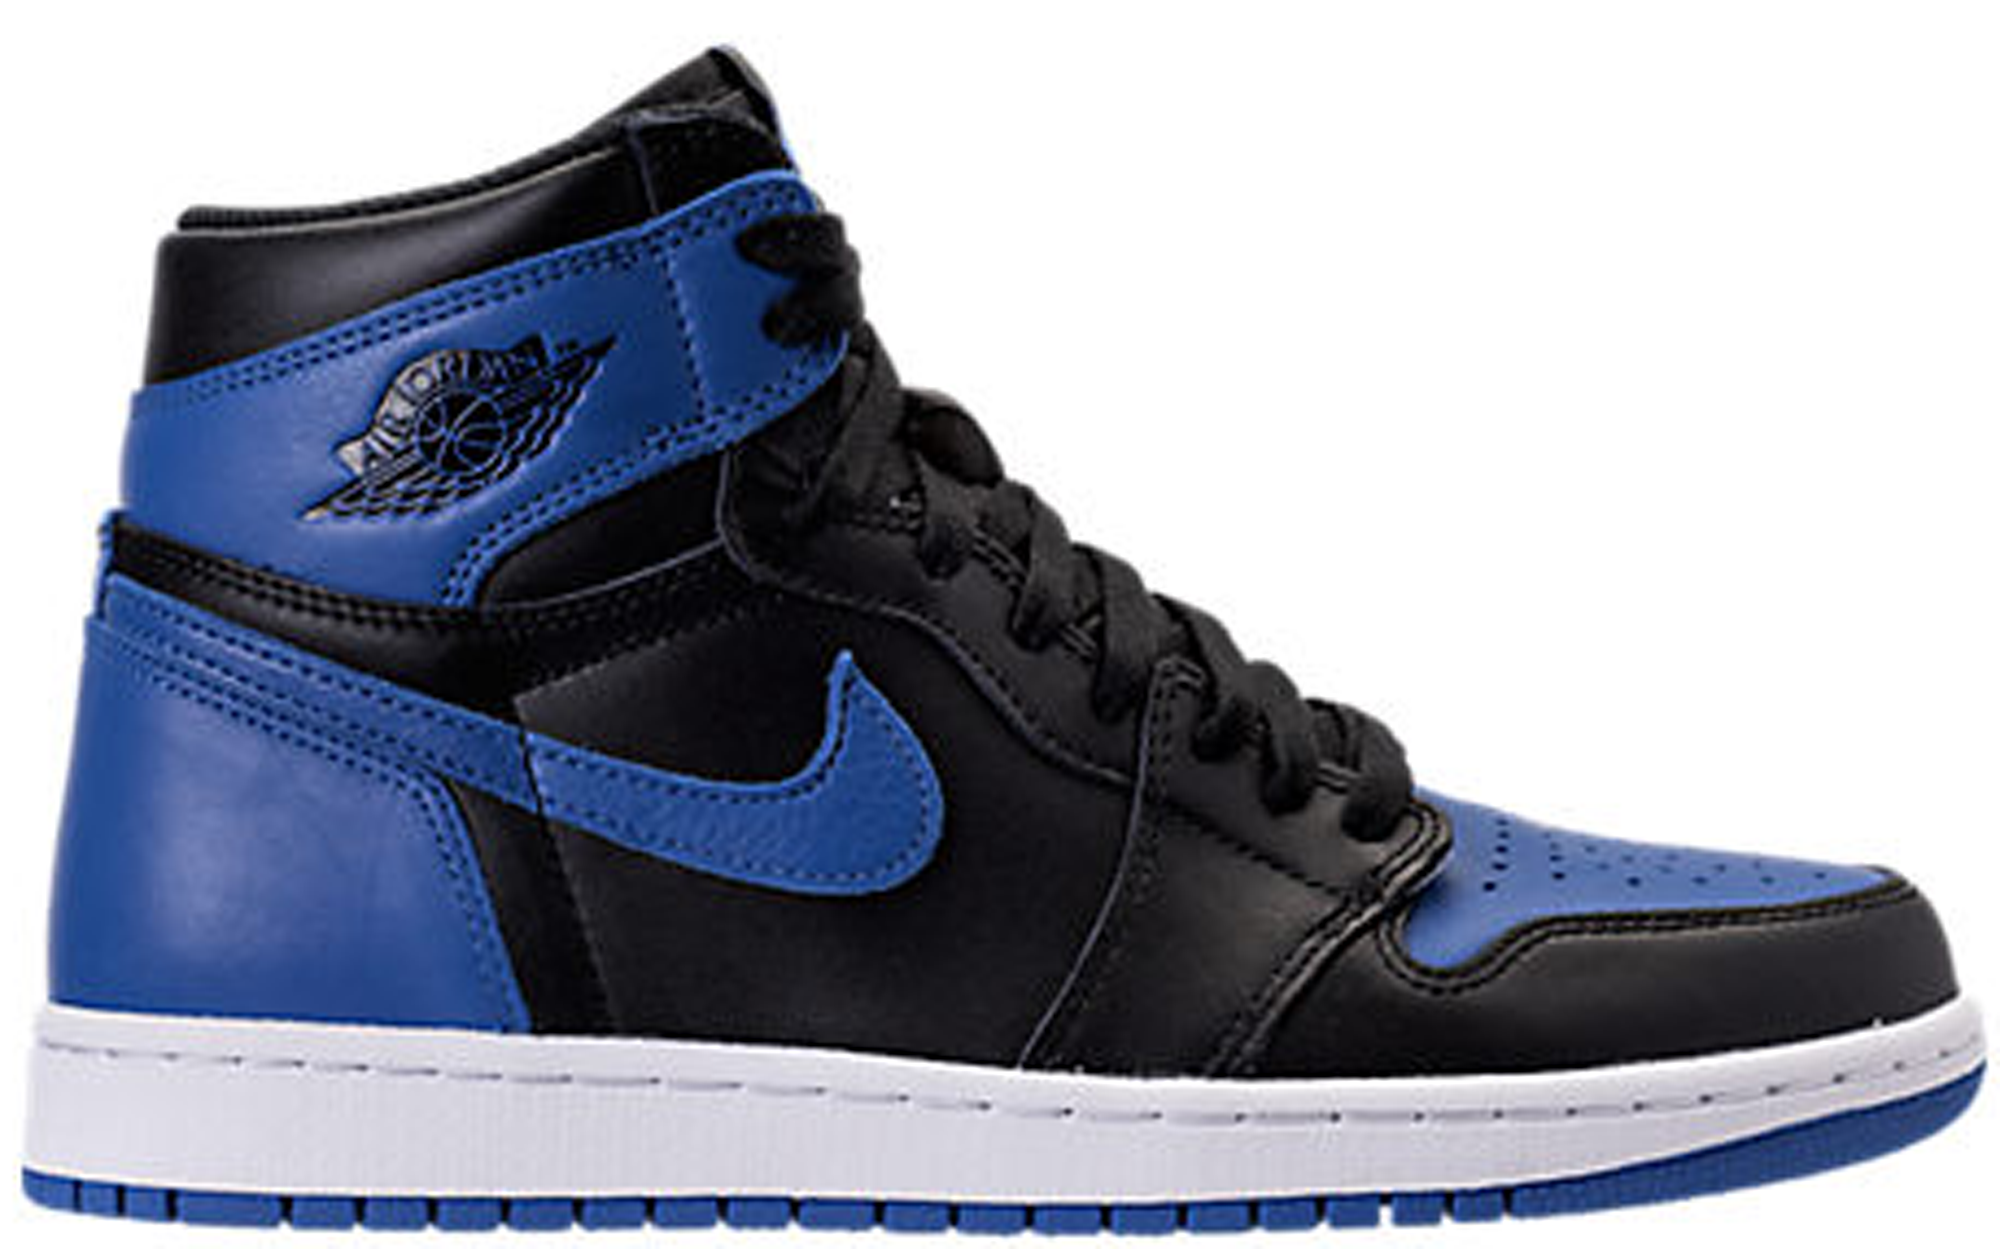 Air Jordan 1 Retro High OG Black Varsity Royal 2017